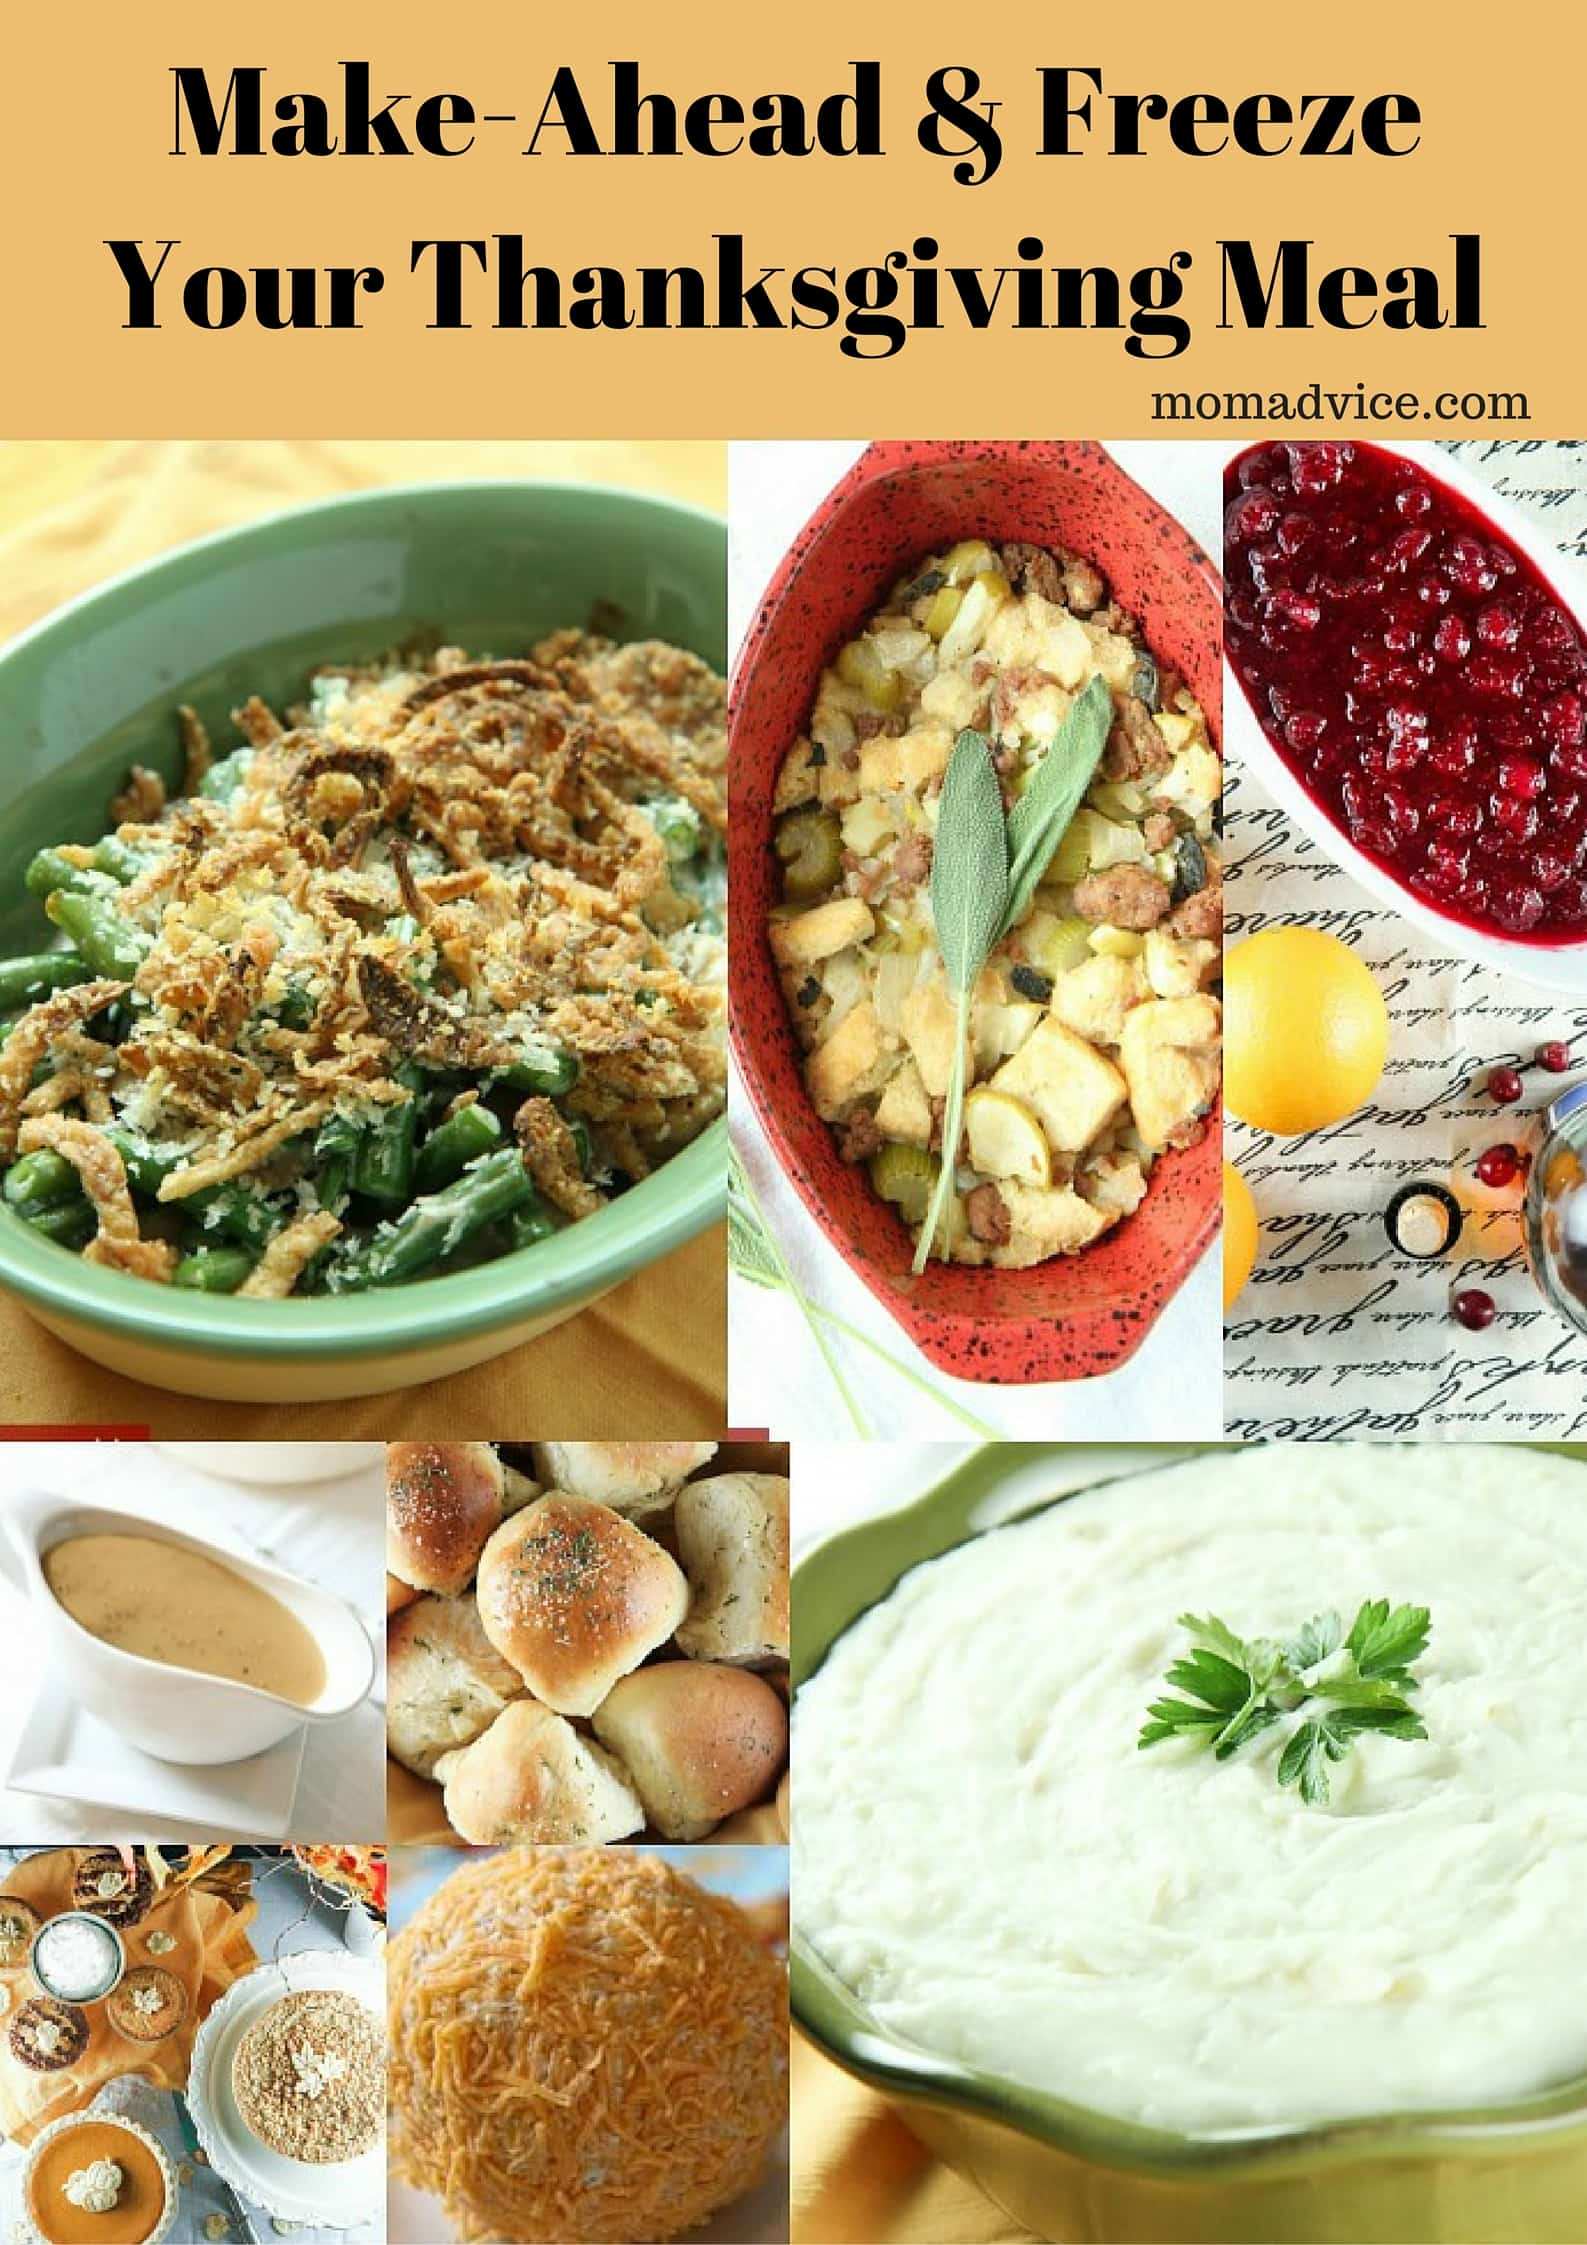 Make-Ahead & Freeze Your Thanksgiving Meal from MomAdvice.com